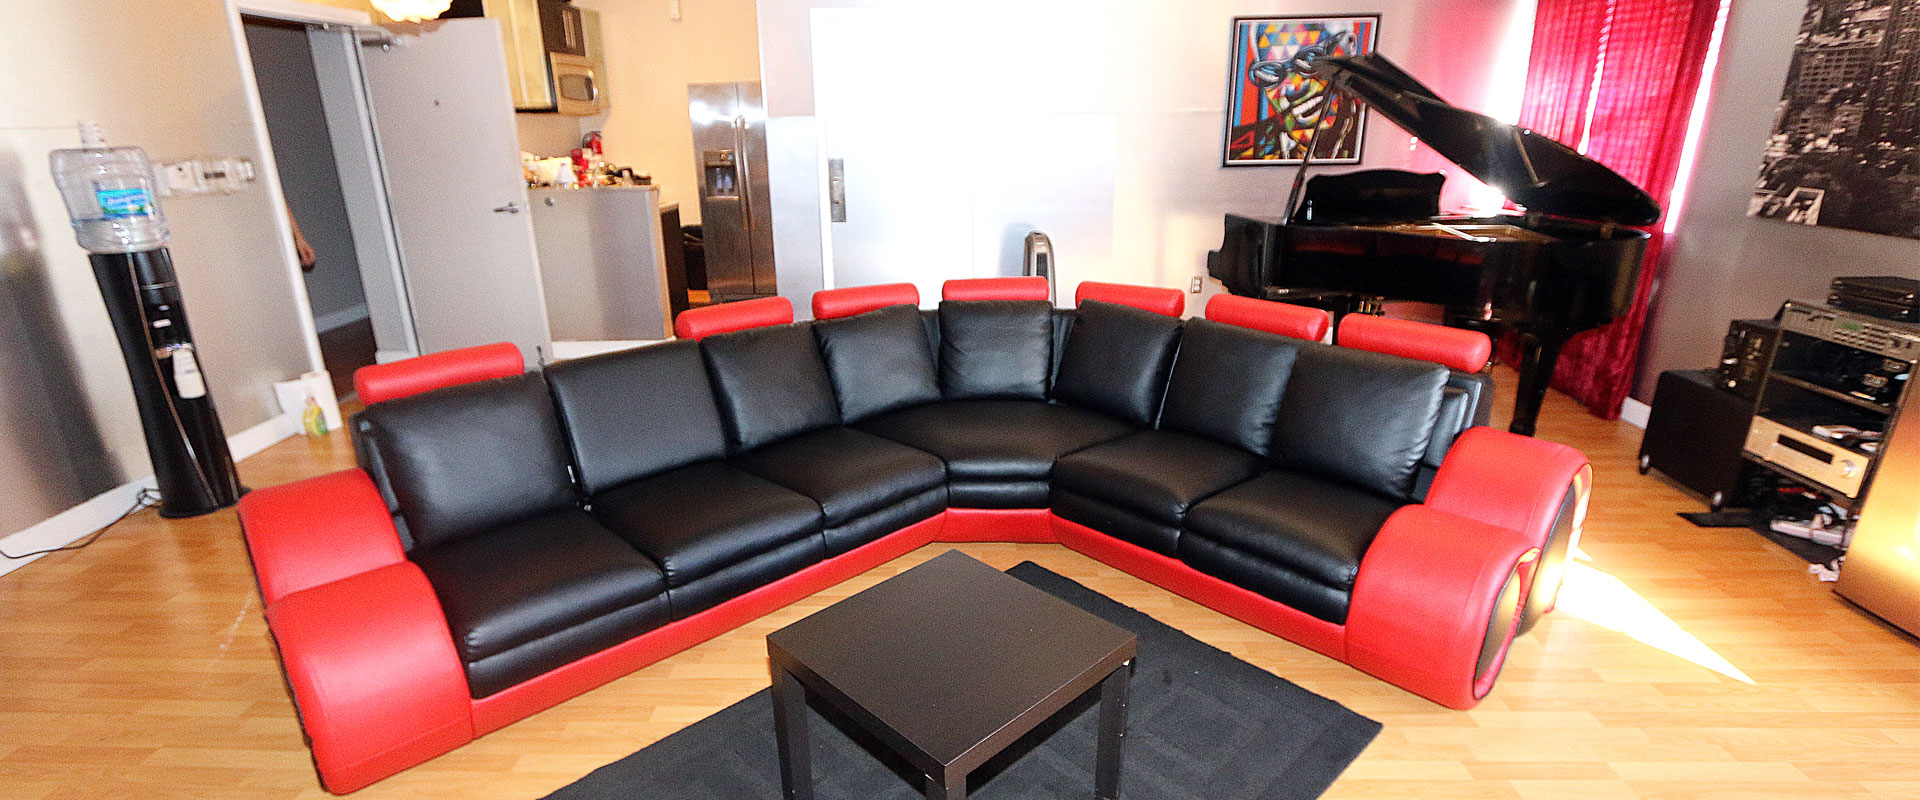 studio_red_couch